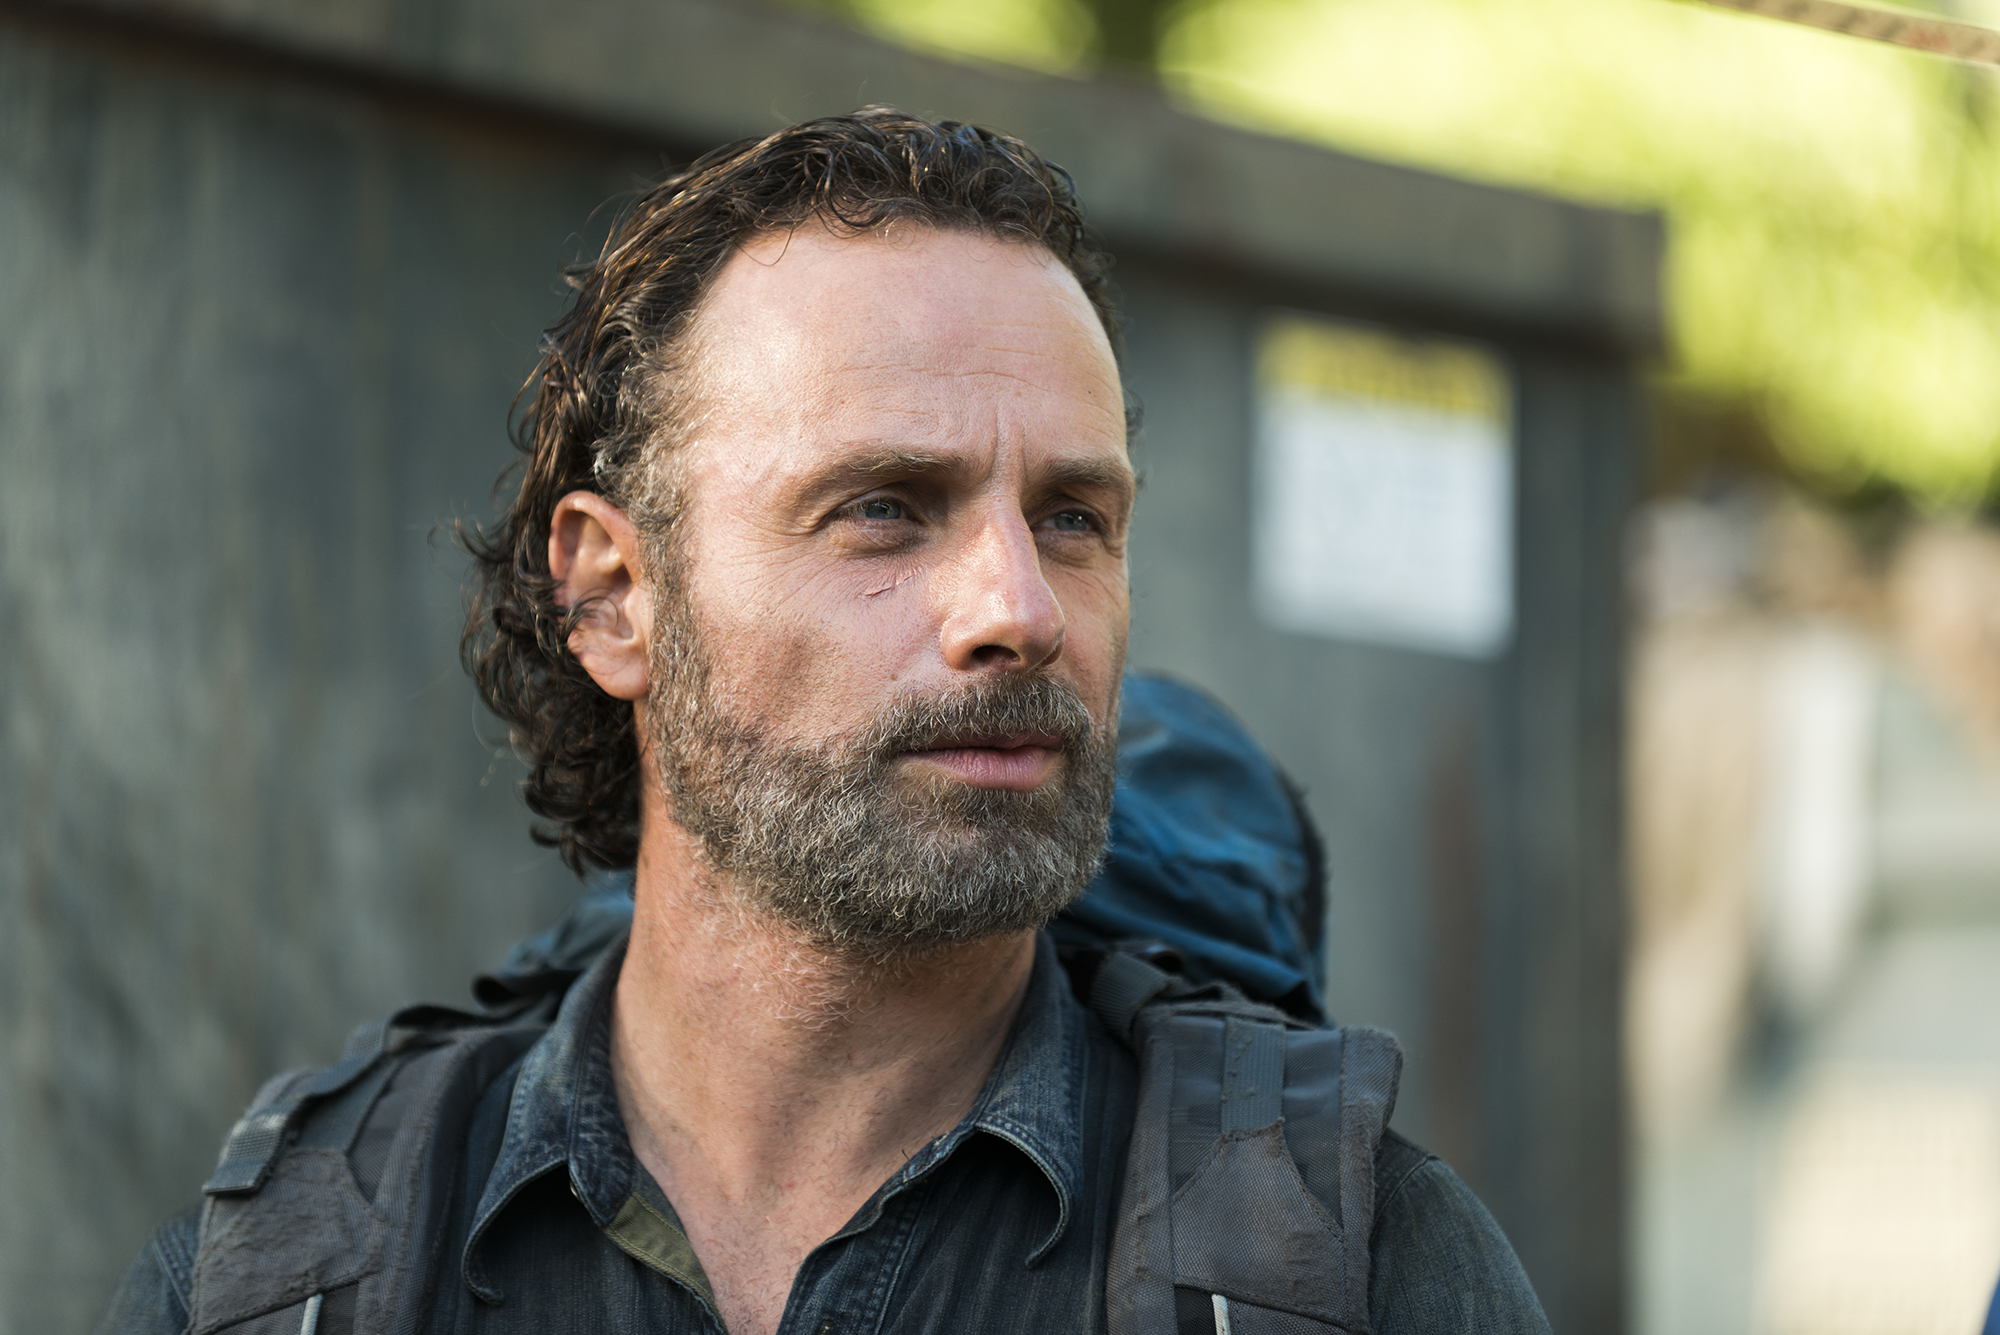 Andrew Lincoln as Rick Grimes - The Walking Dead, Season 7, Episode 12